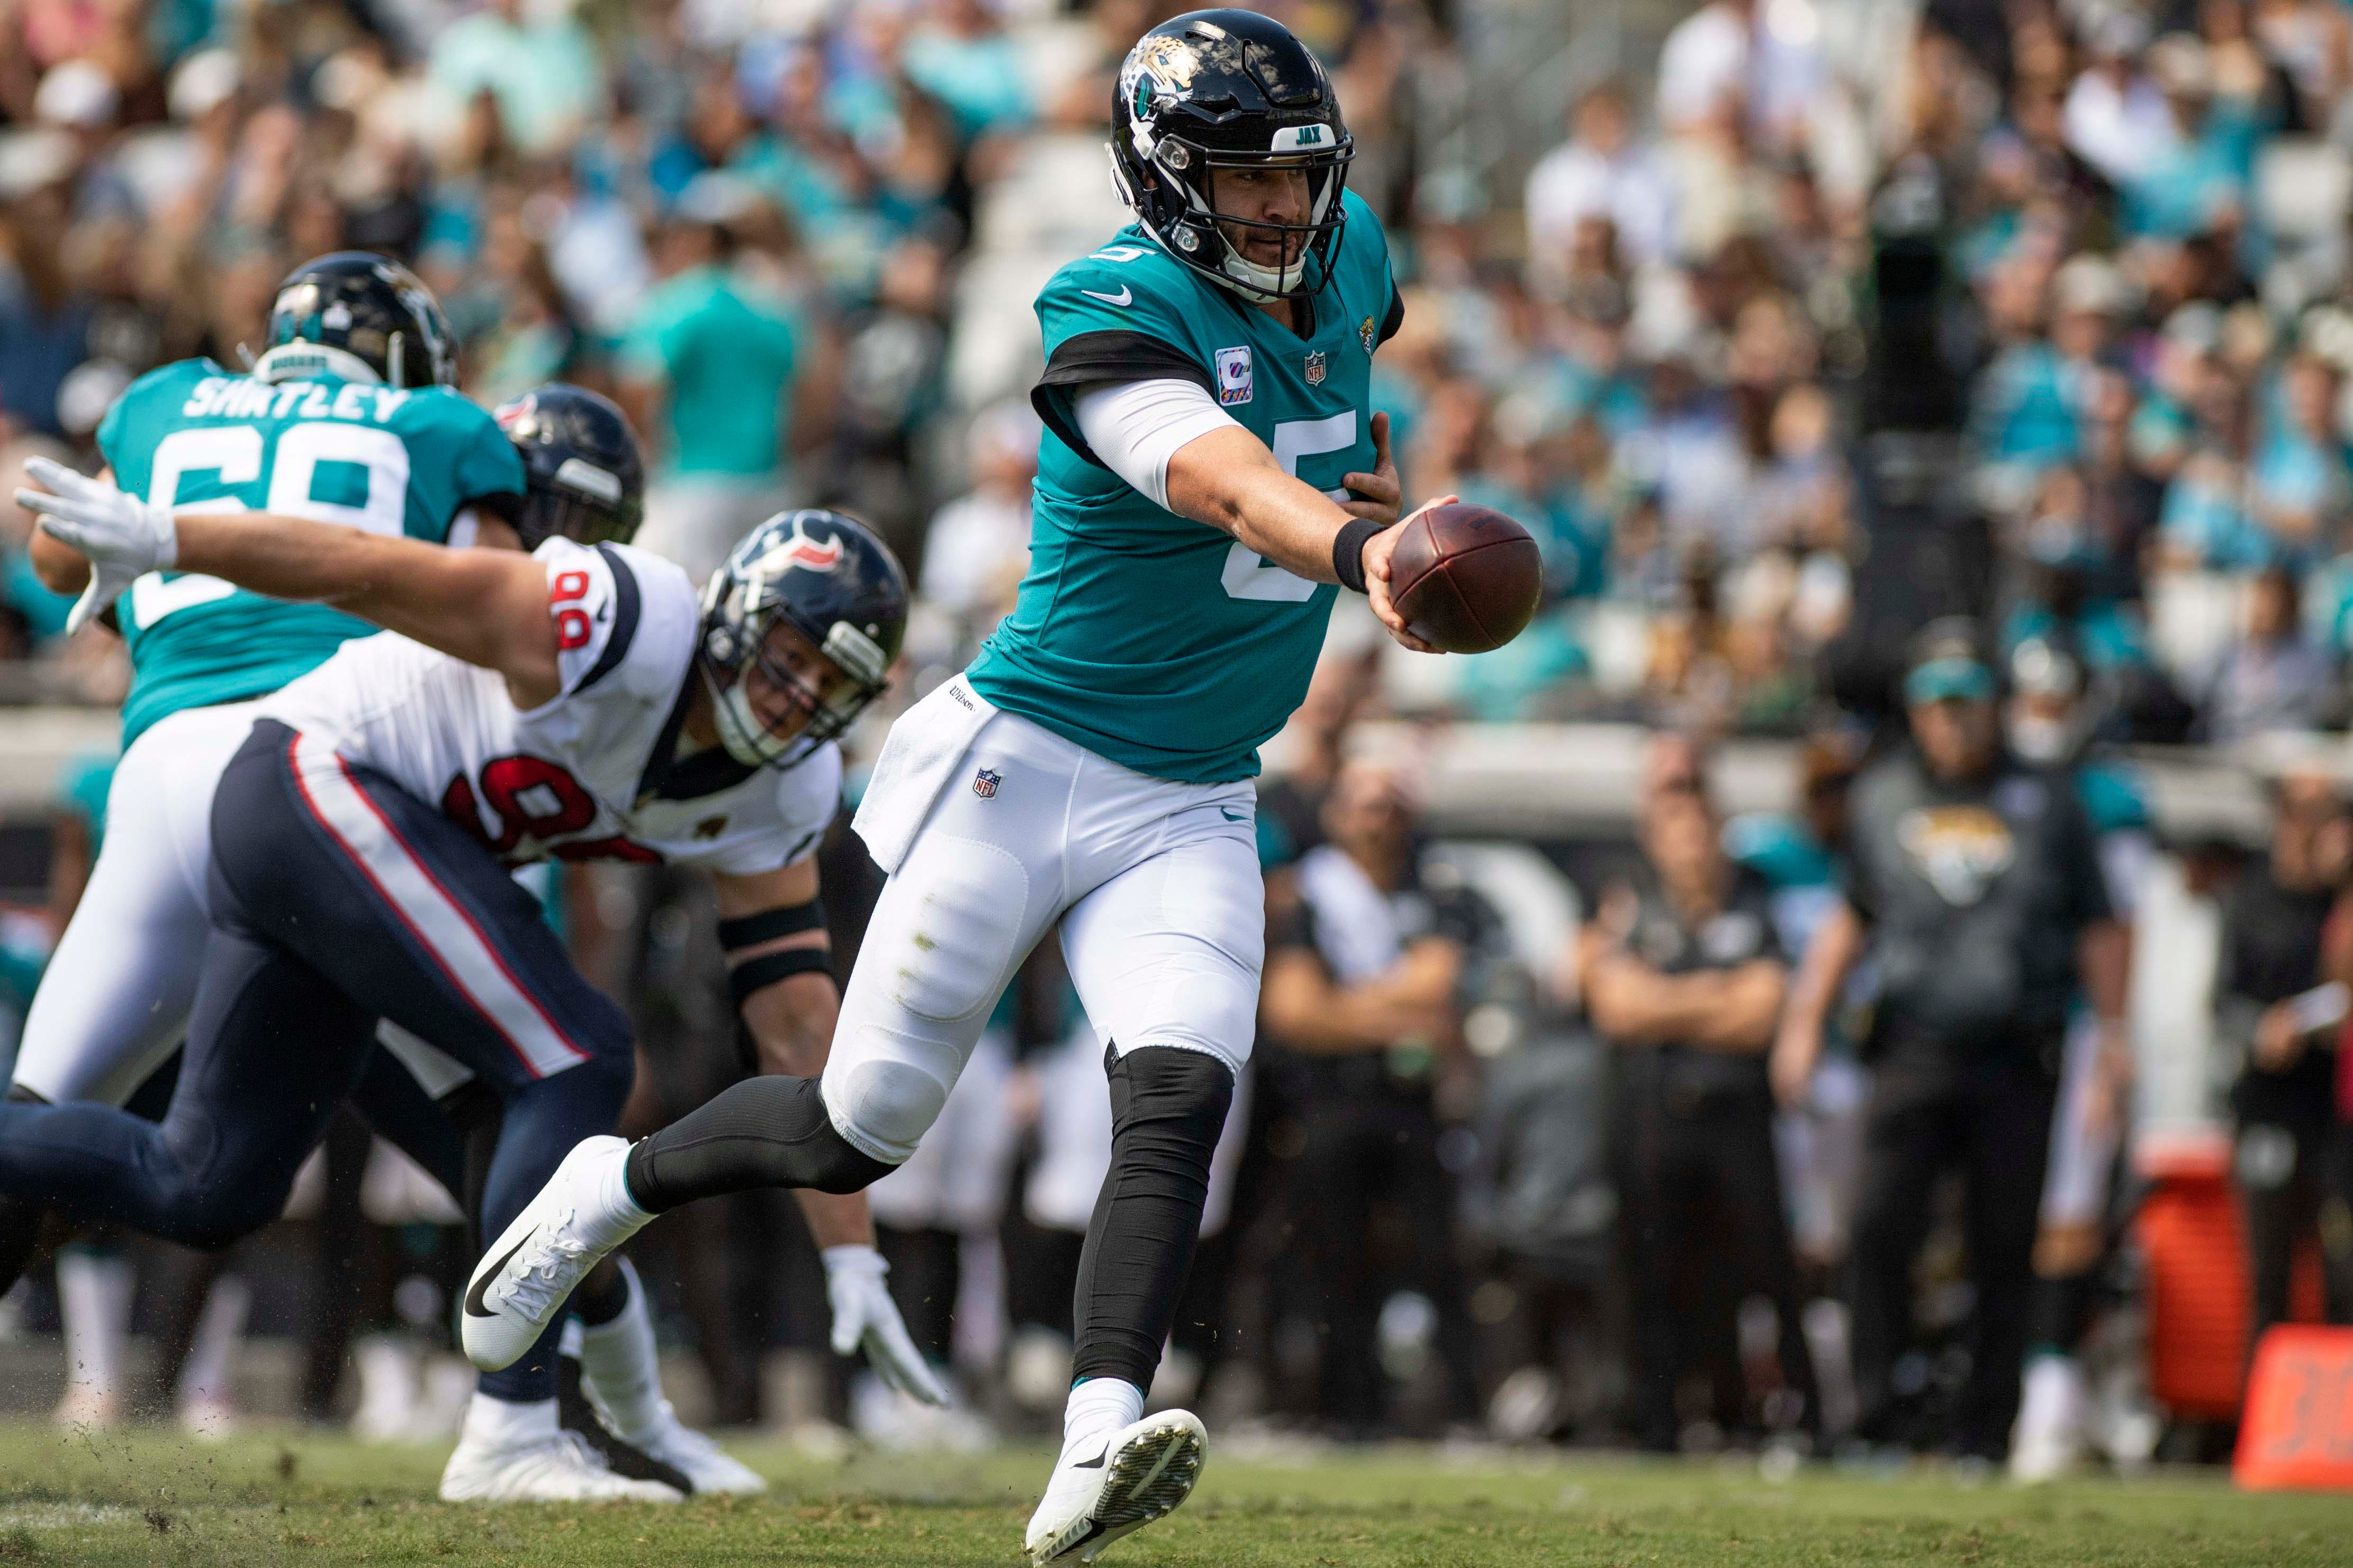 b86c6b0d928 Jacksonville Jaguars quarterback Blake Bortles (5) looks to hand off the  ball during the